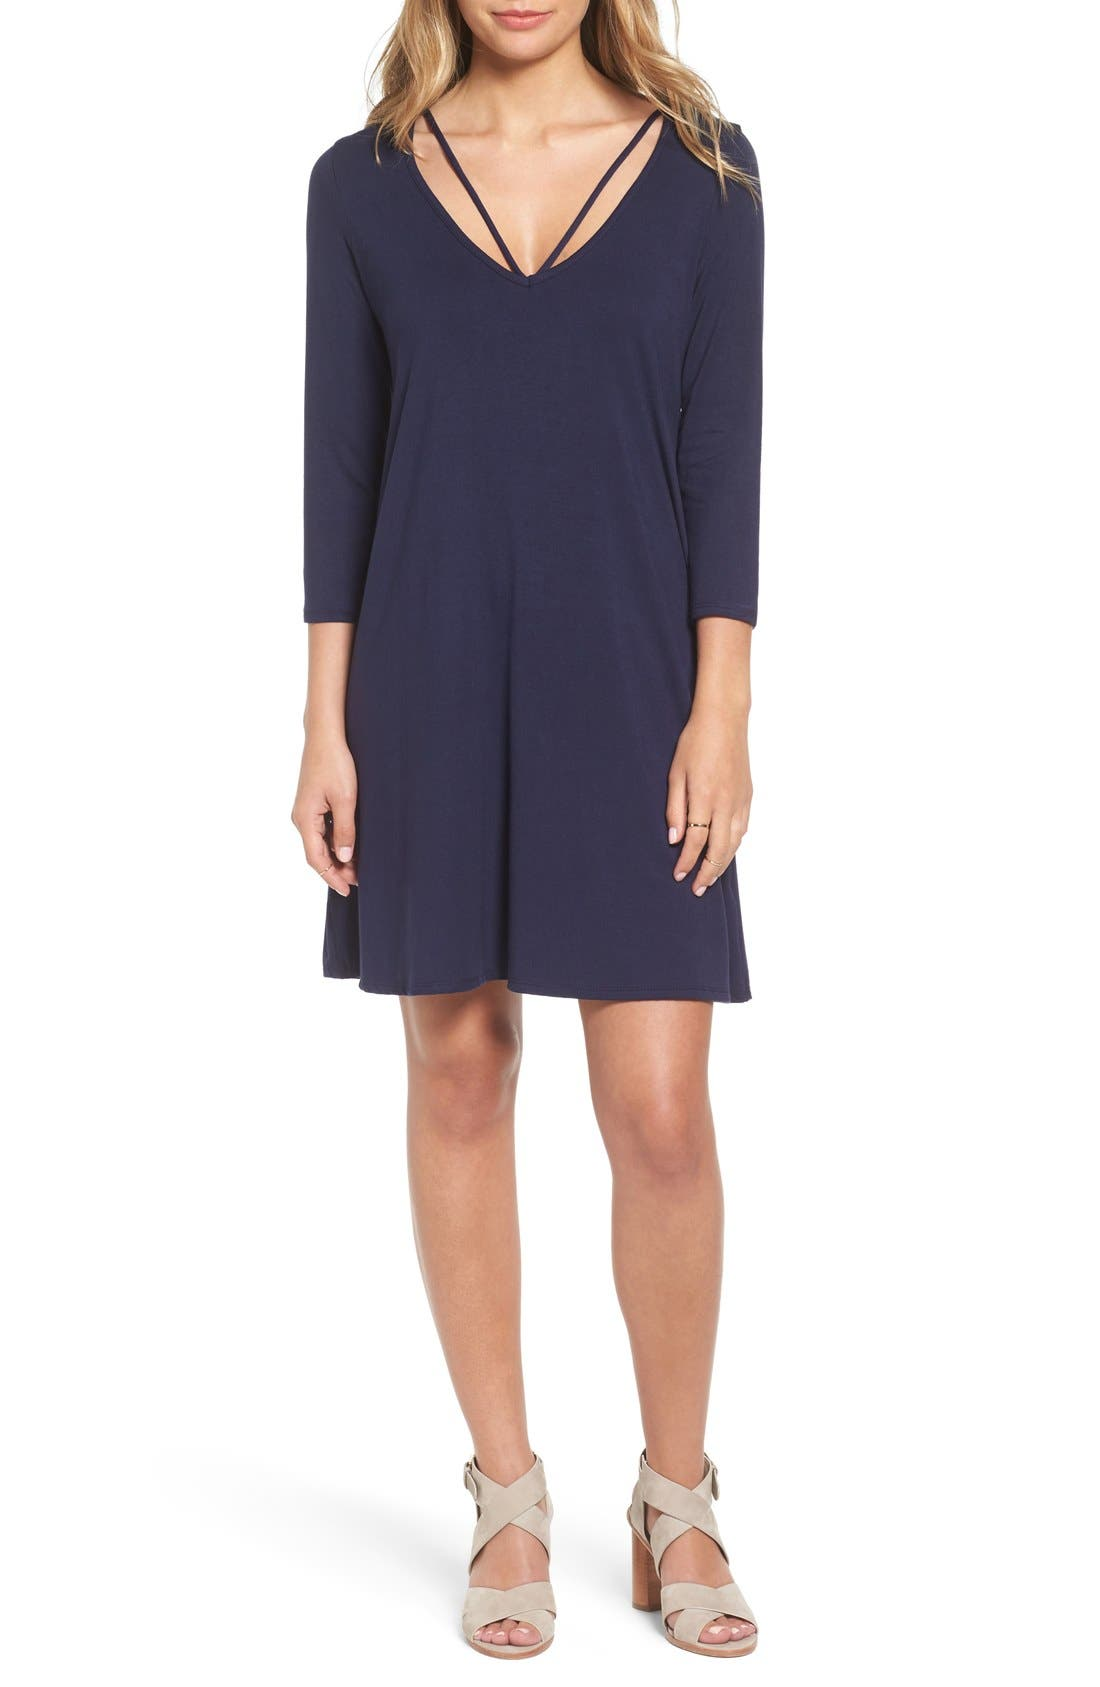 Main Image - Socialite Scoop Neck Shift Dress